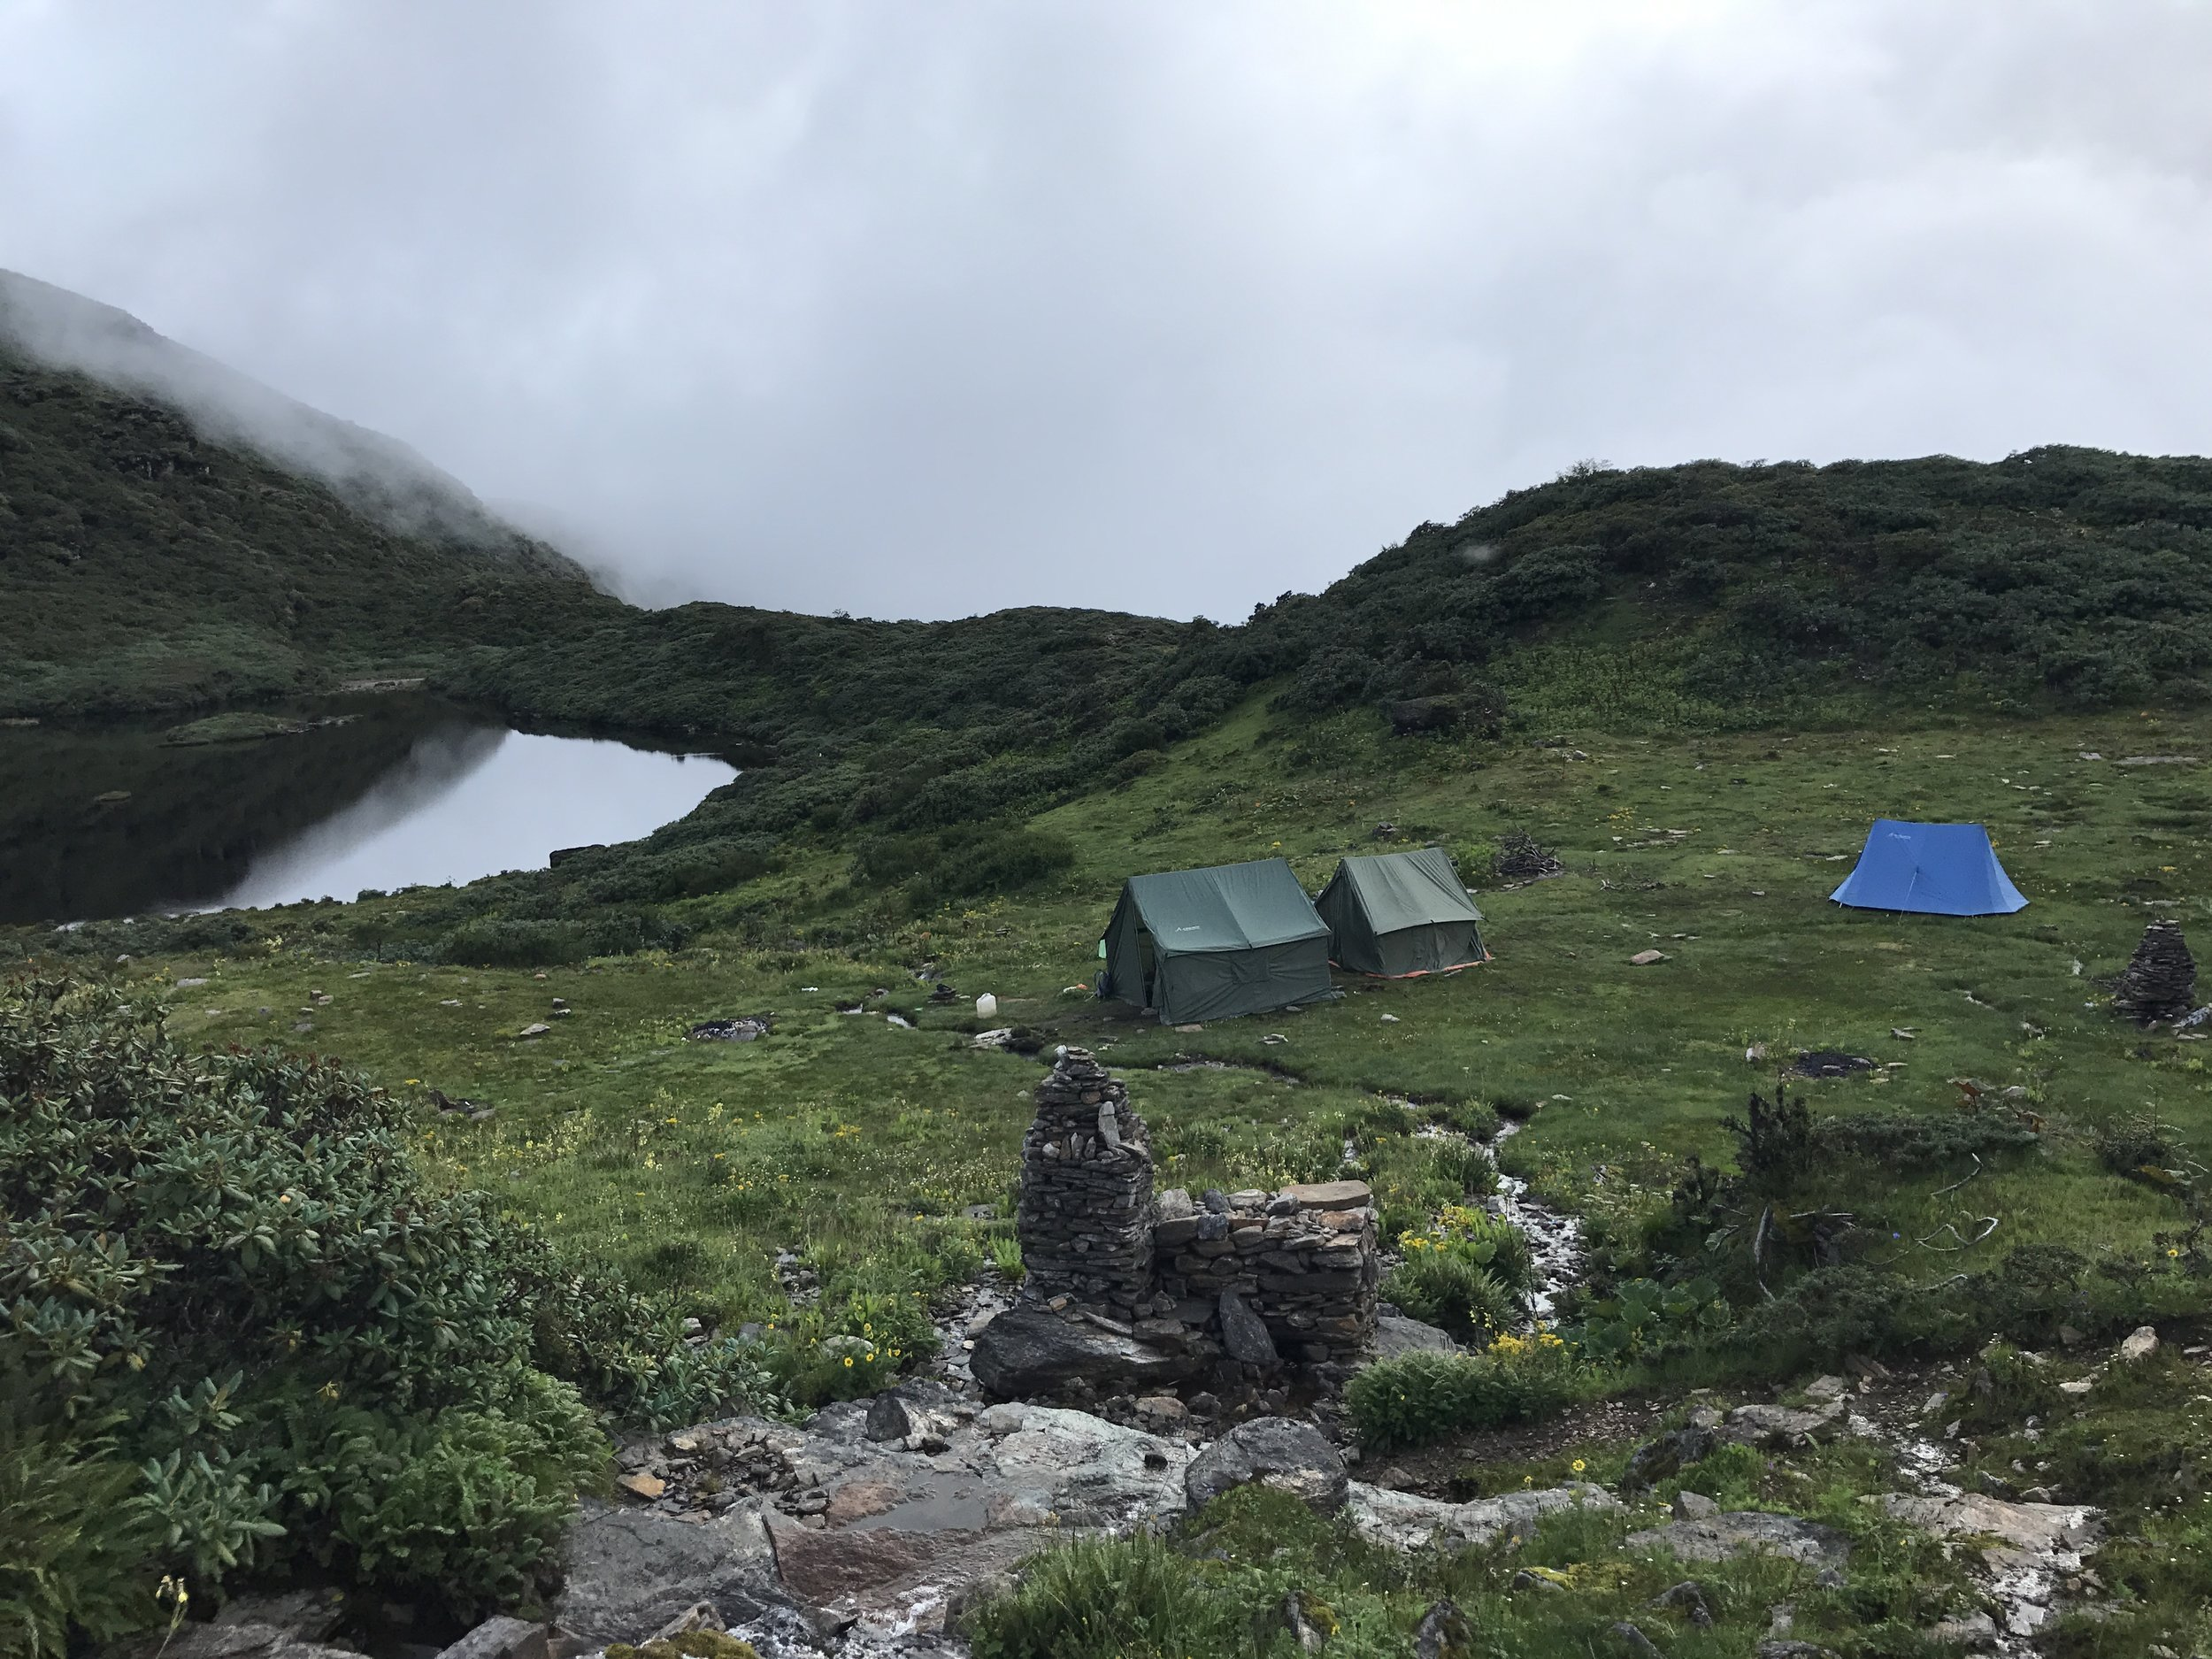 Camp on day two - rarely ever felt so relieved reaching a camp.